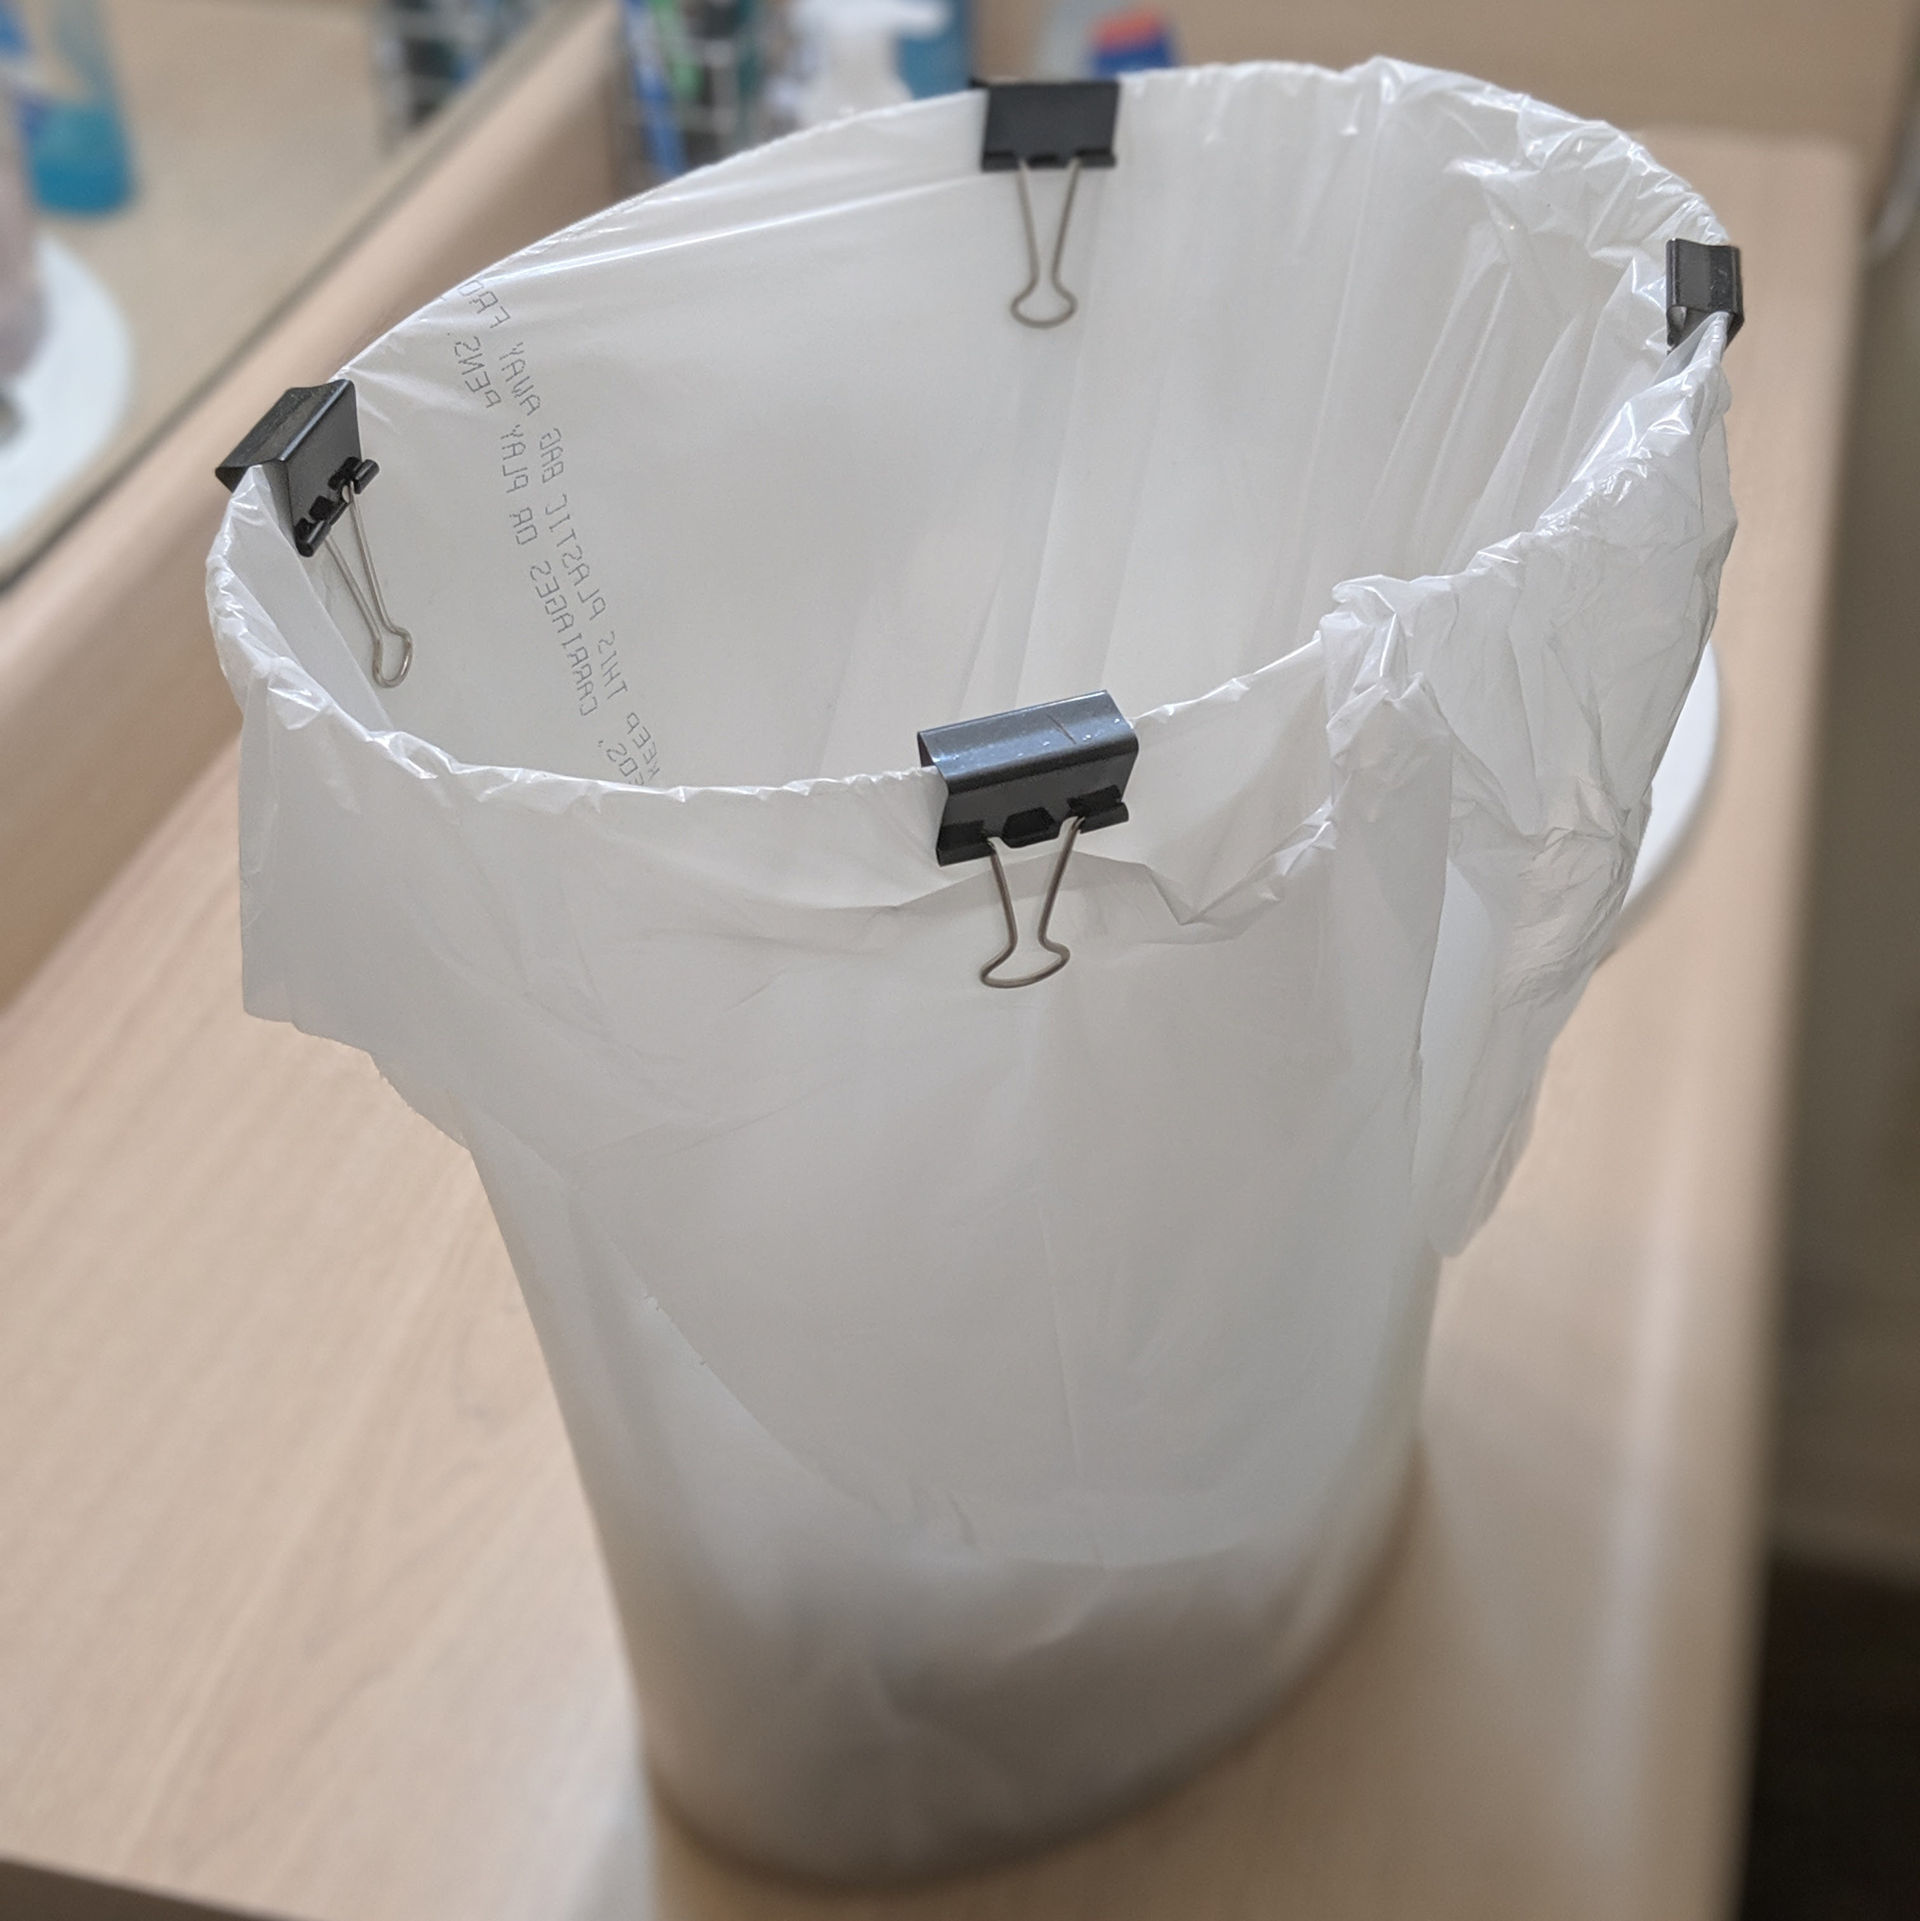 life hack trash can with binder clips